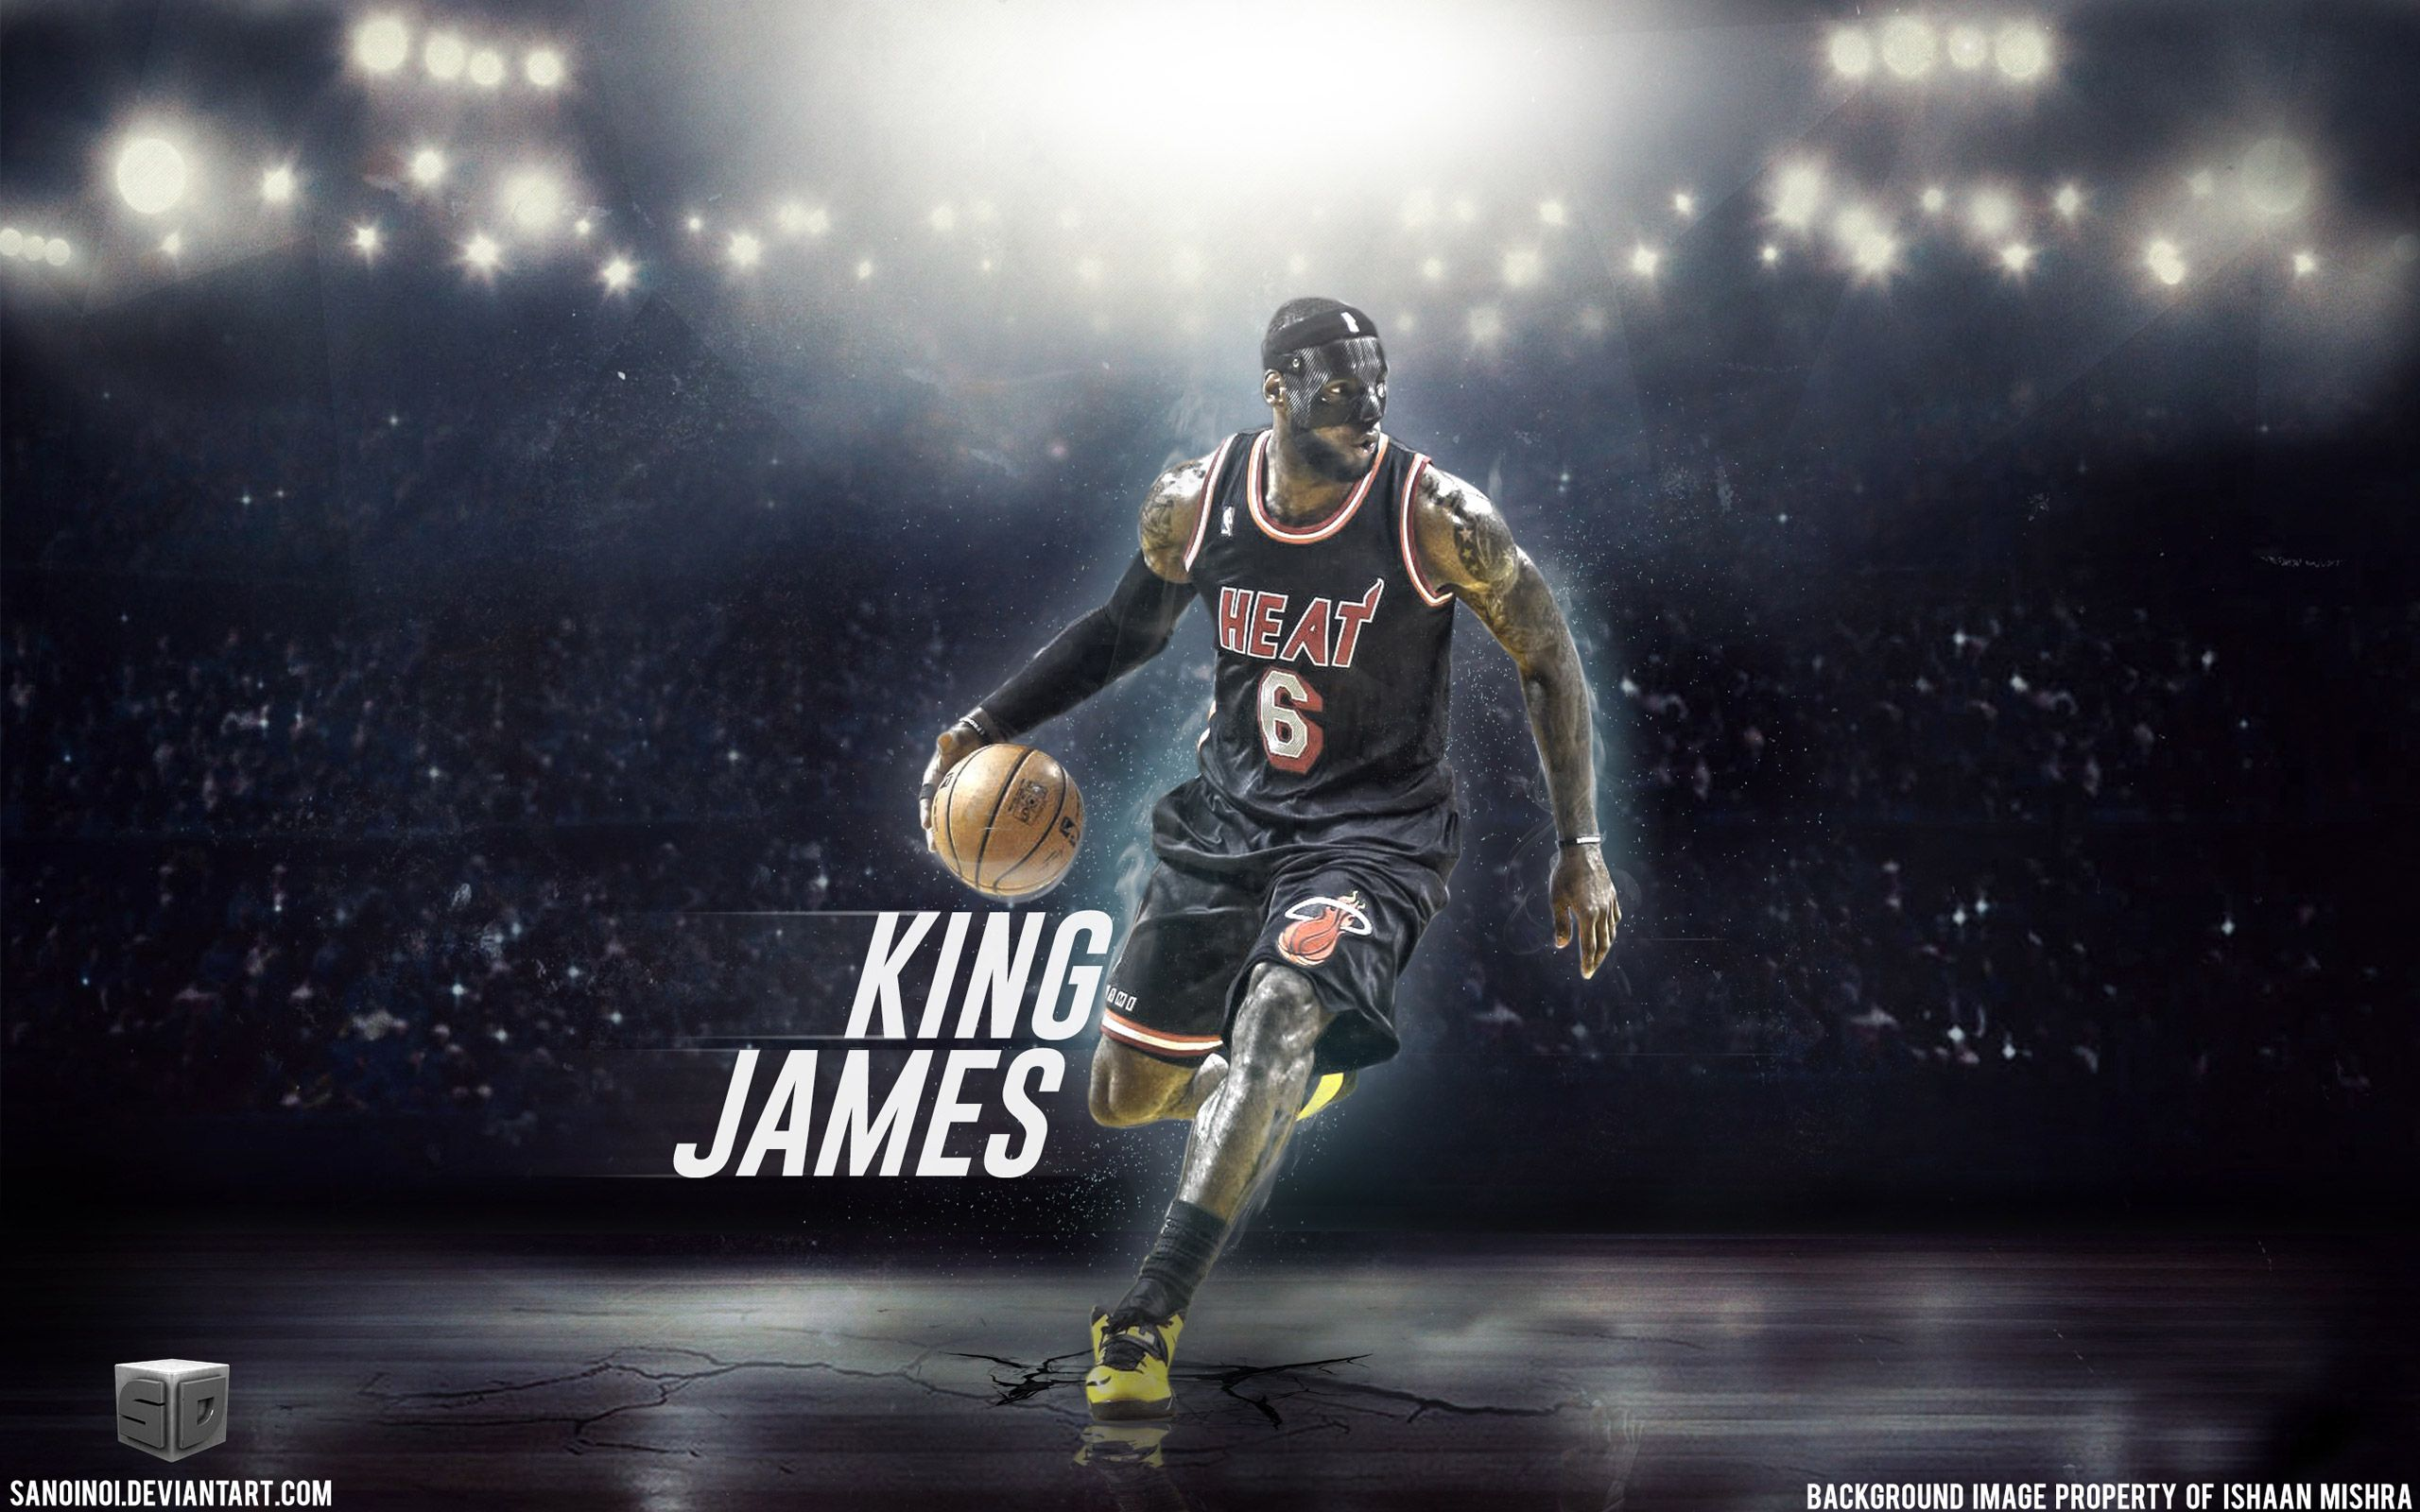 Lebron James Iphone Wallpaper Heat Best Wallpaper Hd Lebron James Wallpapers Lebron James New York Knicks